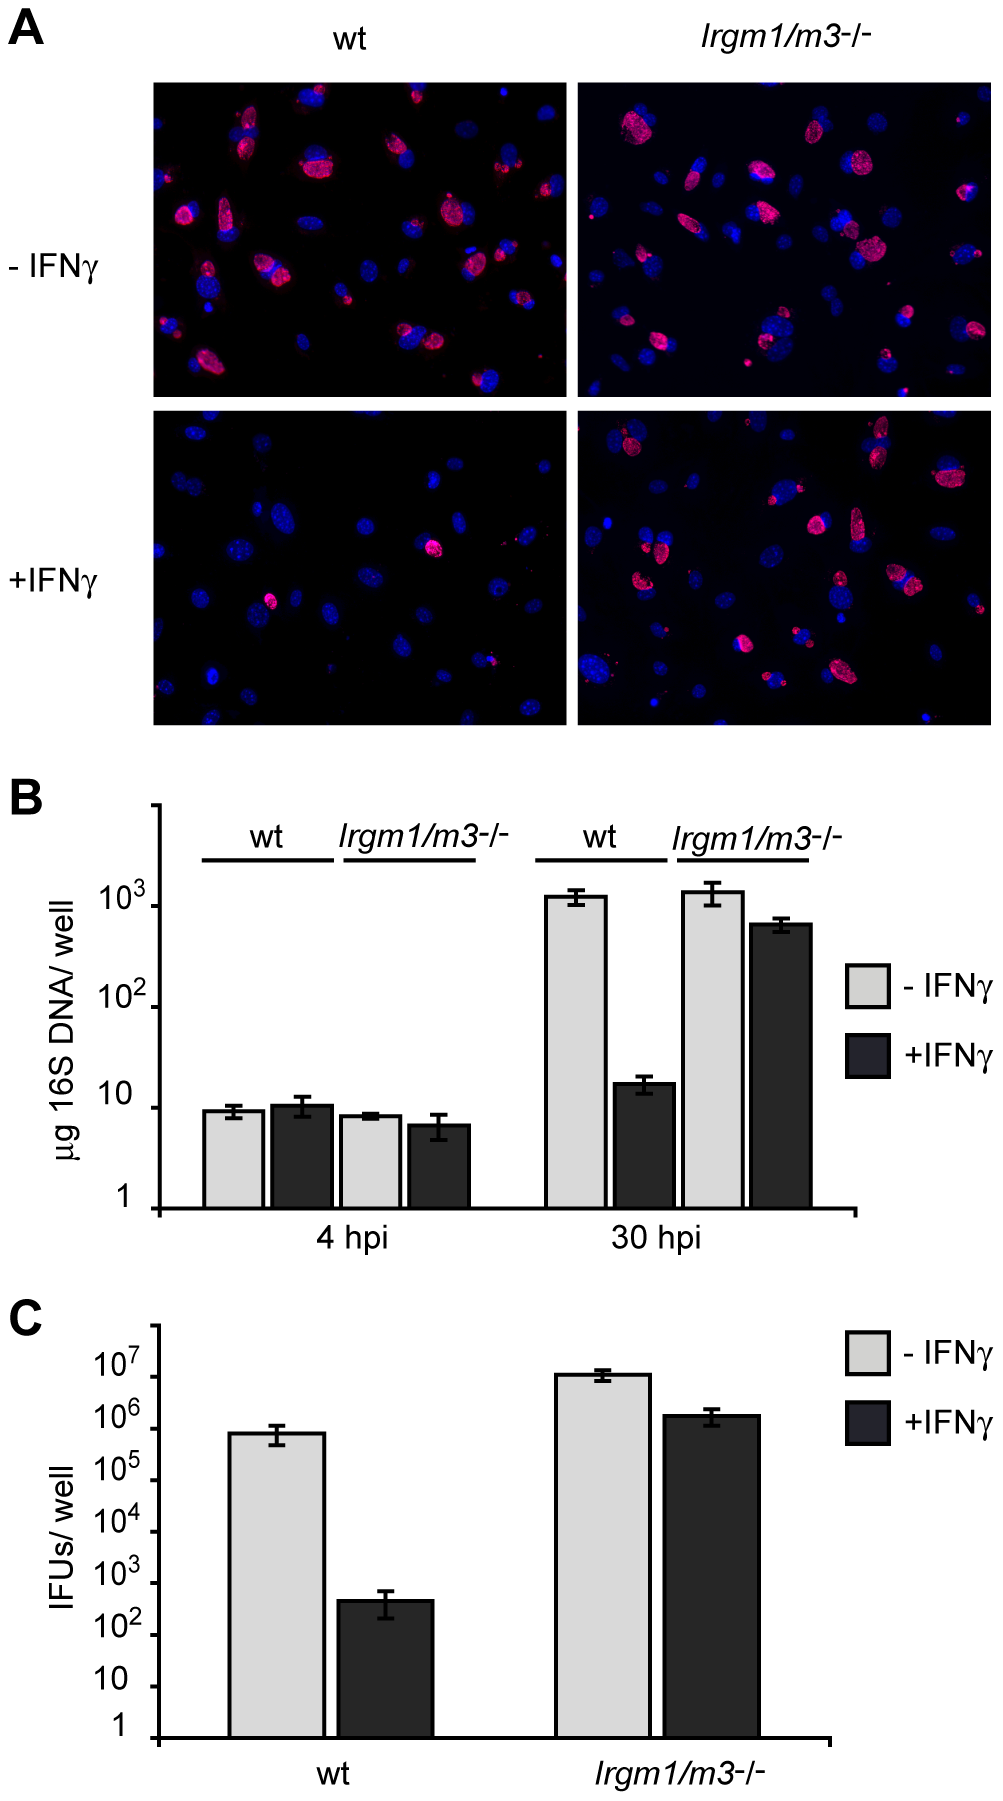 Cells doubly deficient for <i>Irgm1</i> and <i>Irgm3</i> exert minimal IFNγ-induced cell-autonomous resistance to <i>C. trachomatis</i>.